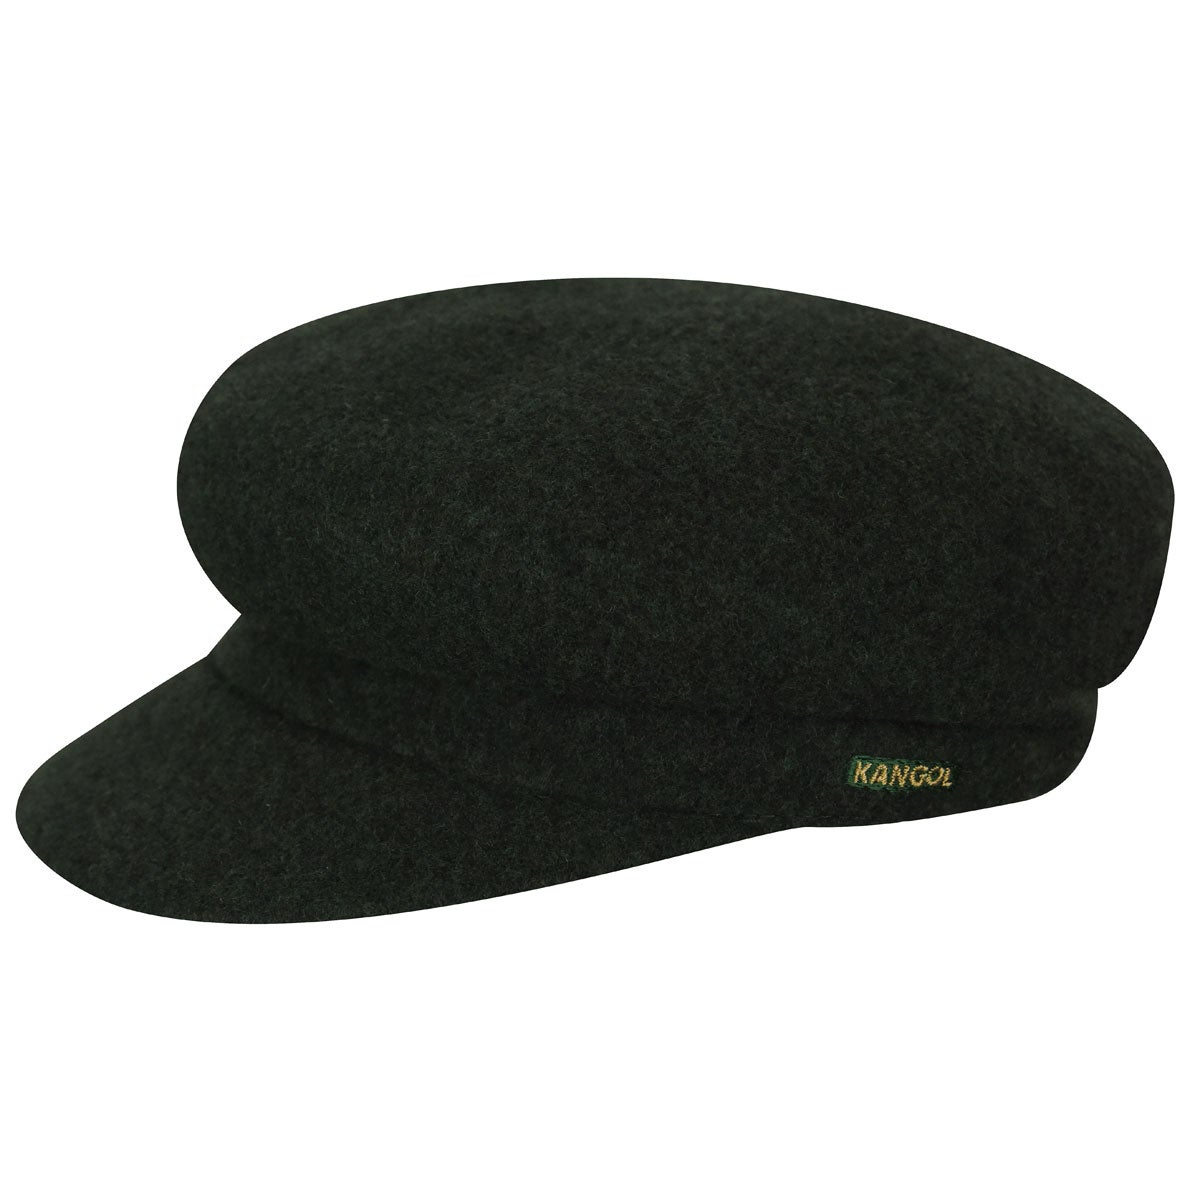 1960s – 70s Style Men's Hats Wool Enfield $61.00 AT vintagedancer.com